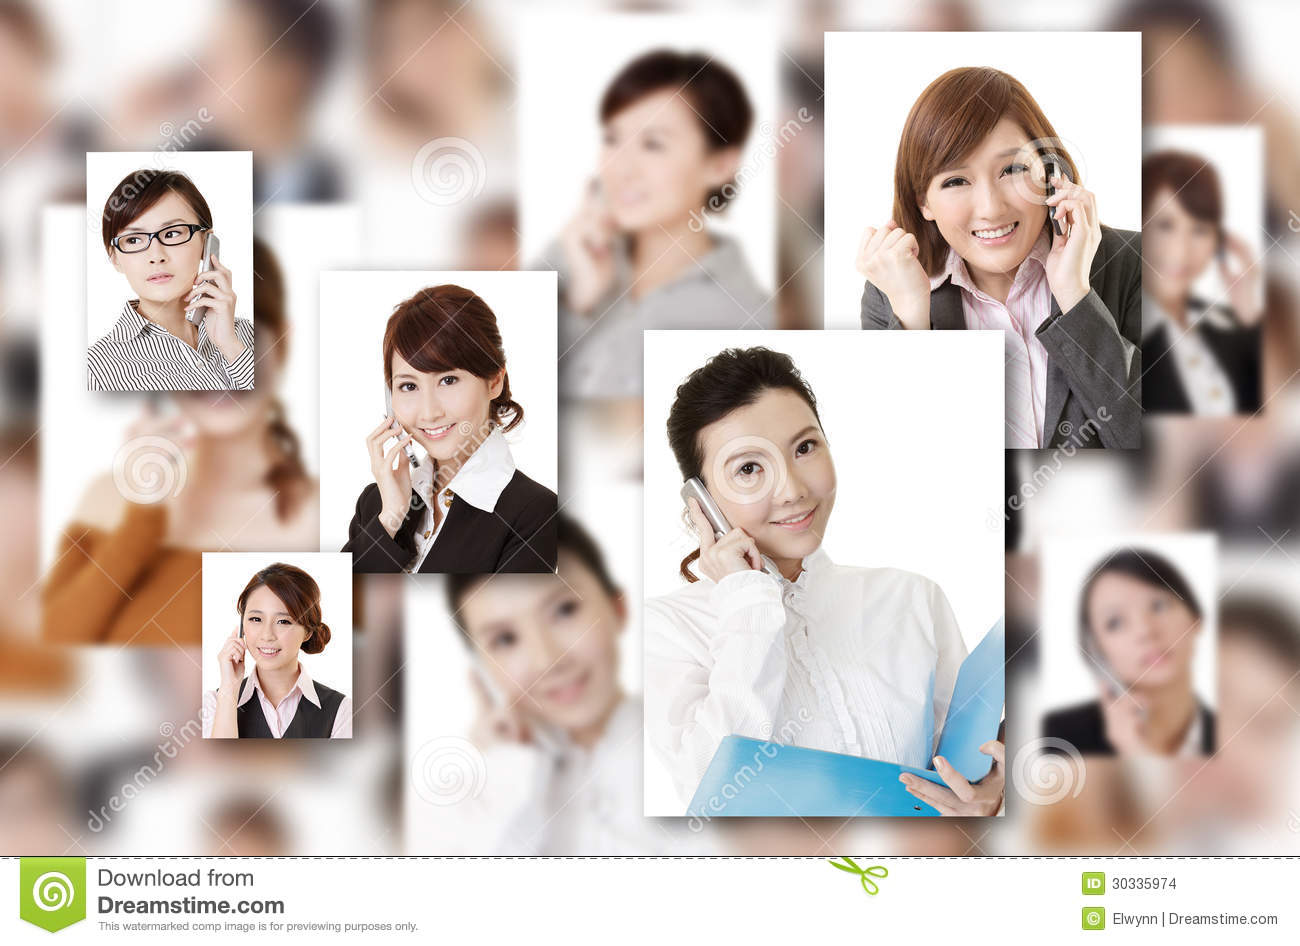 Wall Of Communication Stock Images - Image: 30335974